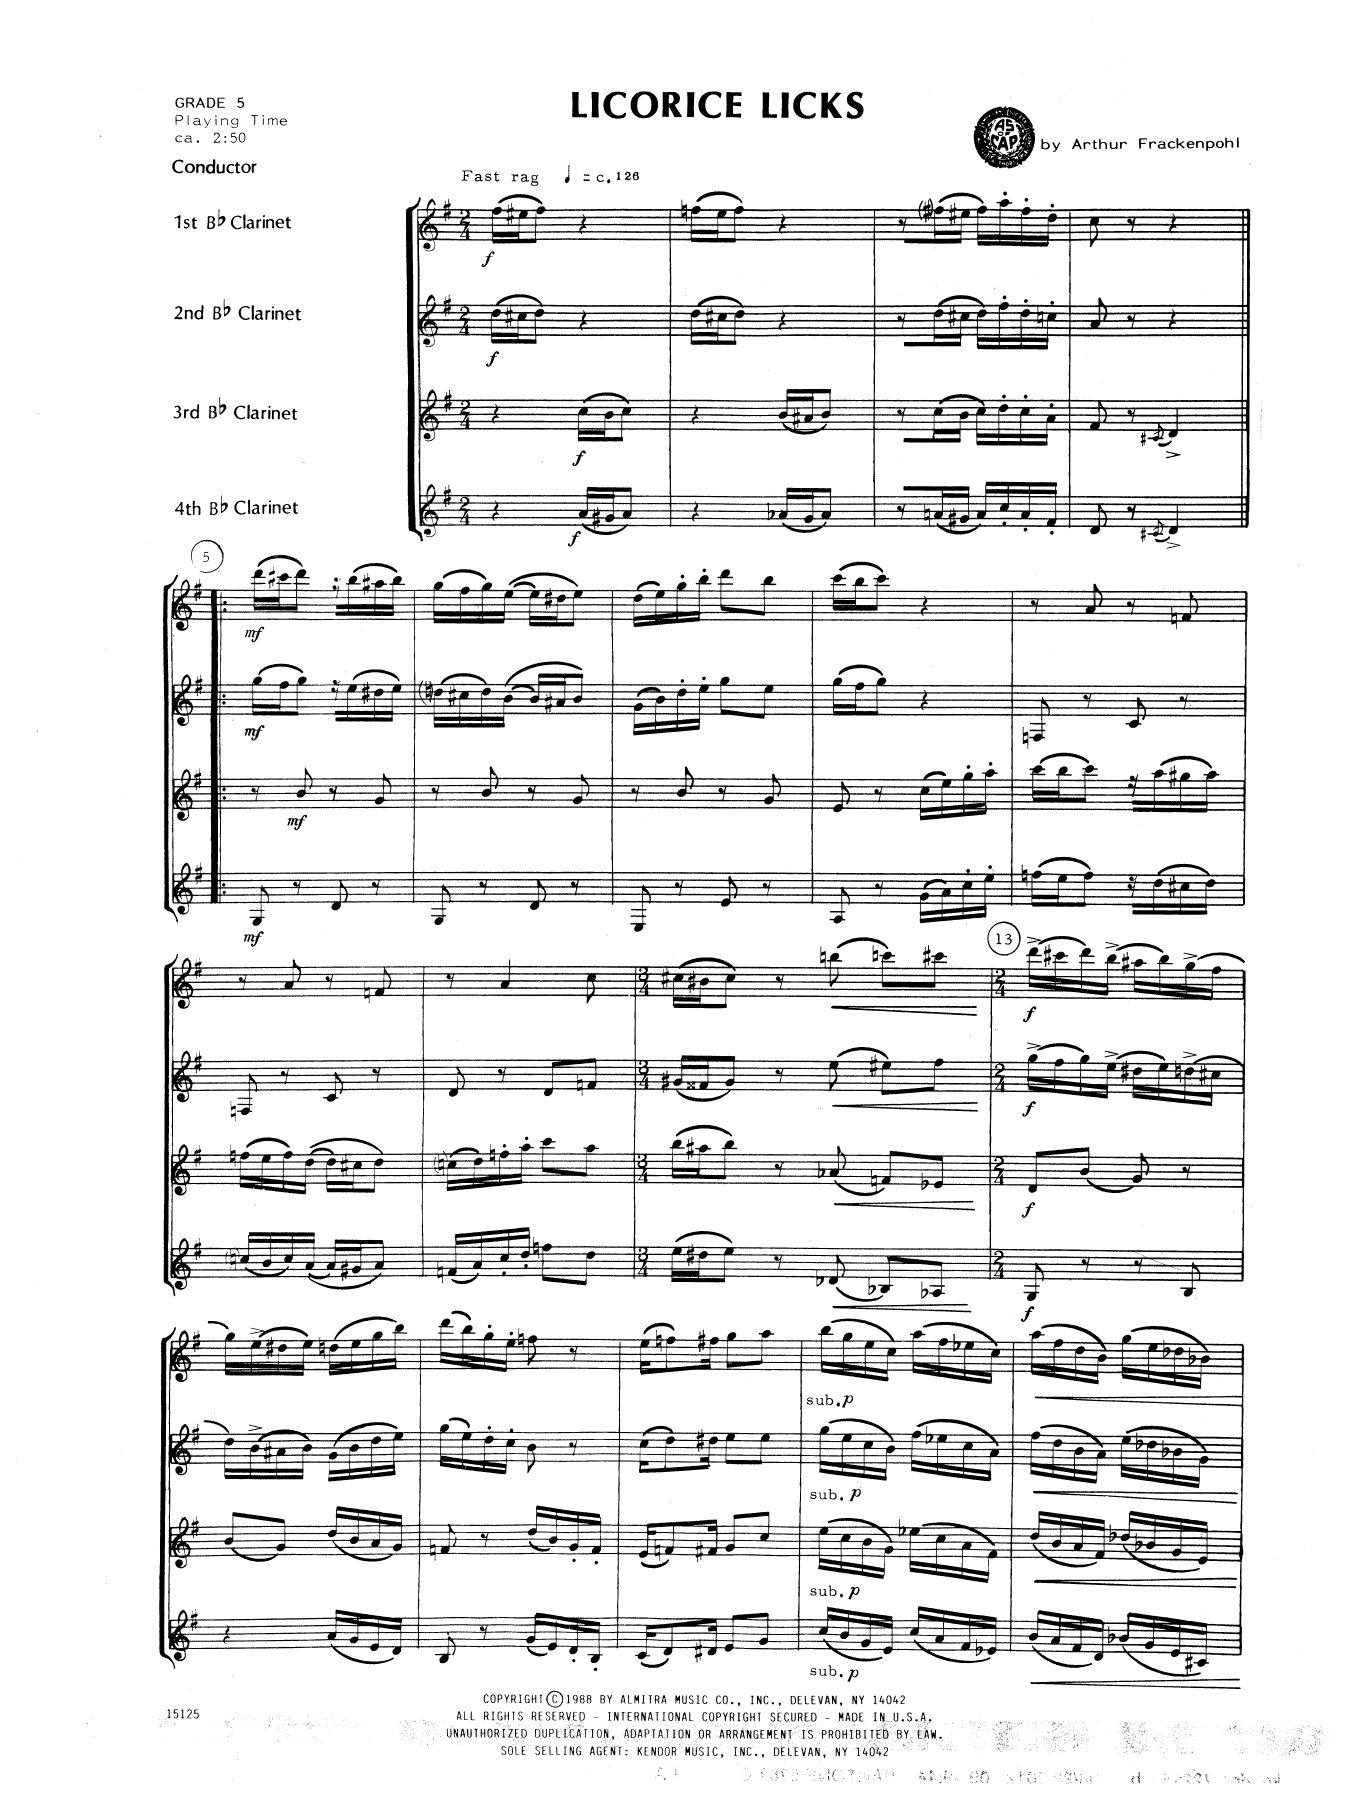 Licorice Licks - Full Score Sheet Music